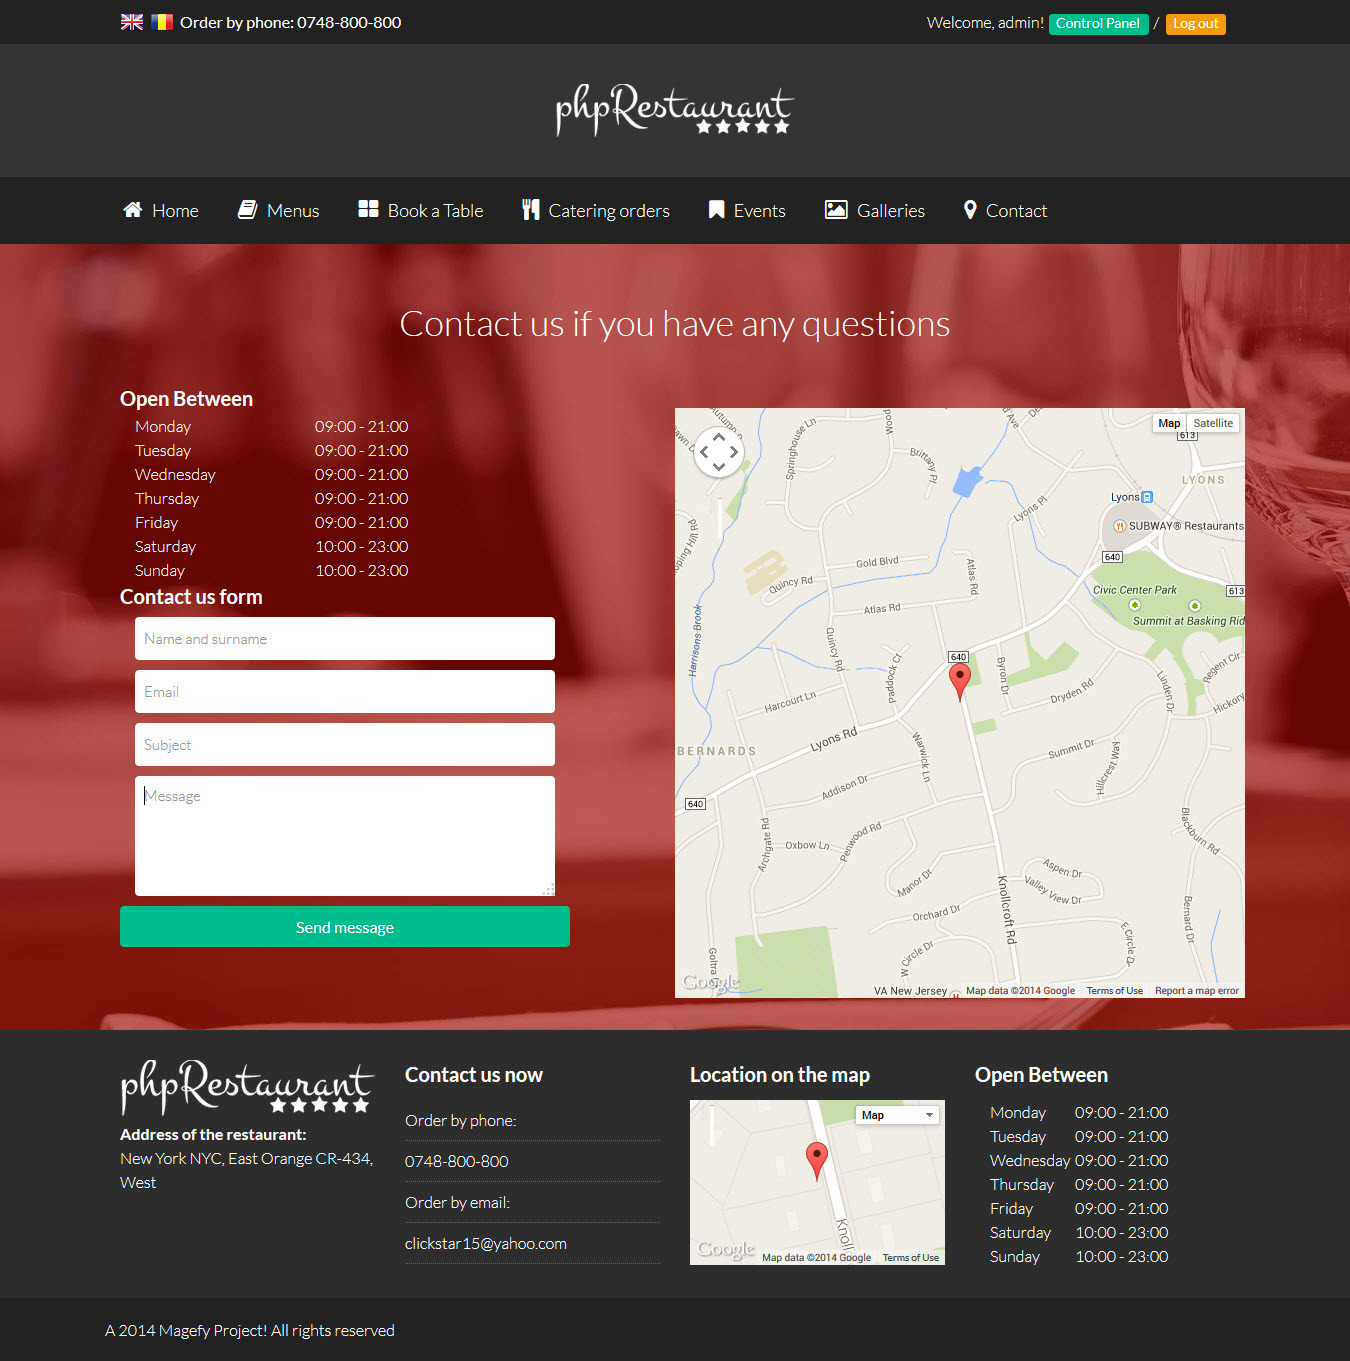 PhpRestaurant Restaurant Script With CMS By Cristianstan - Bootstrap contact us page with map